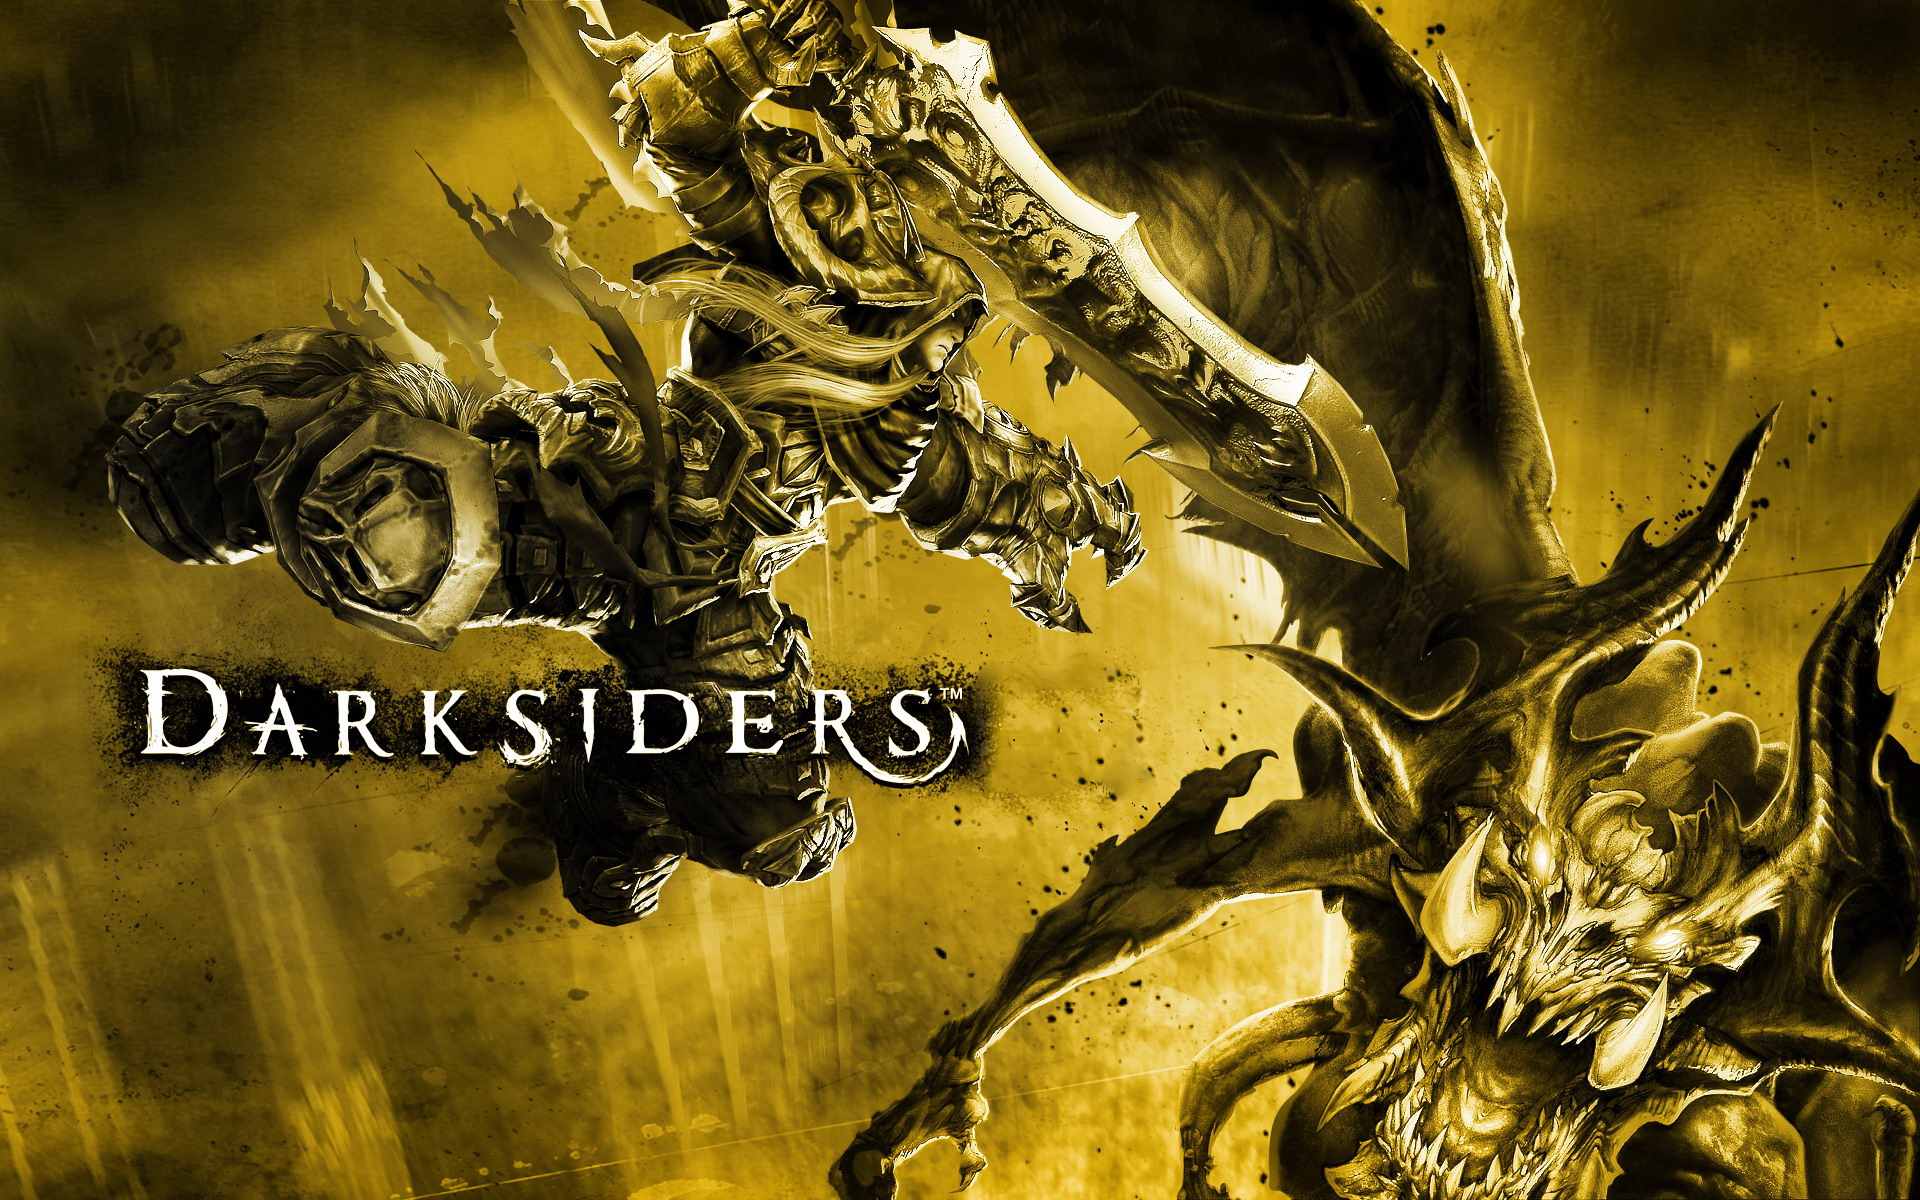 Darksiders 2010 Game 487.63 Kb